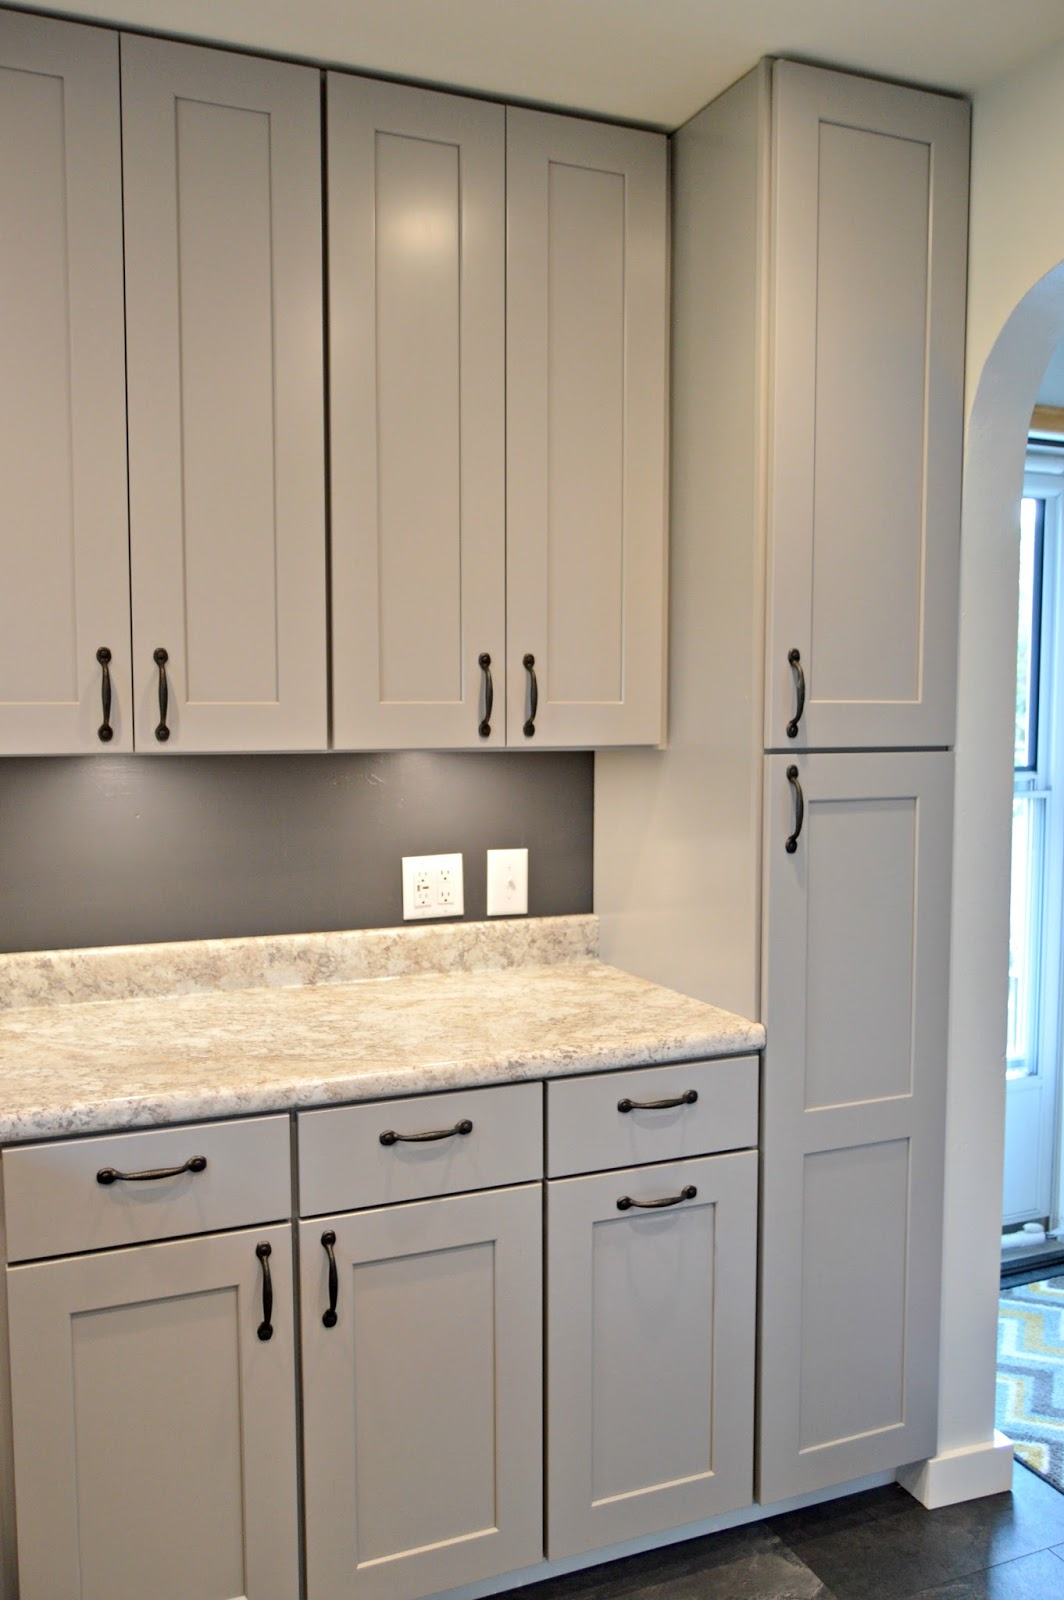 Kruse 39 s workshop kitchen remodel Gray colors for kitchen